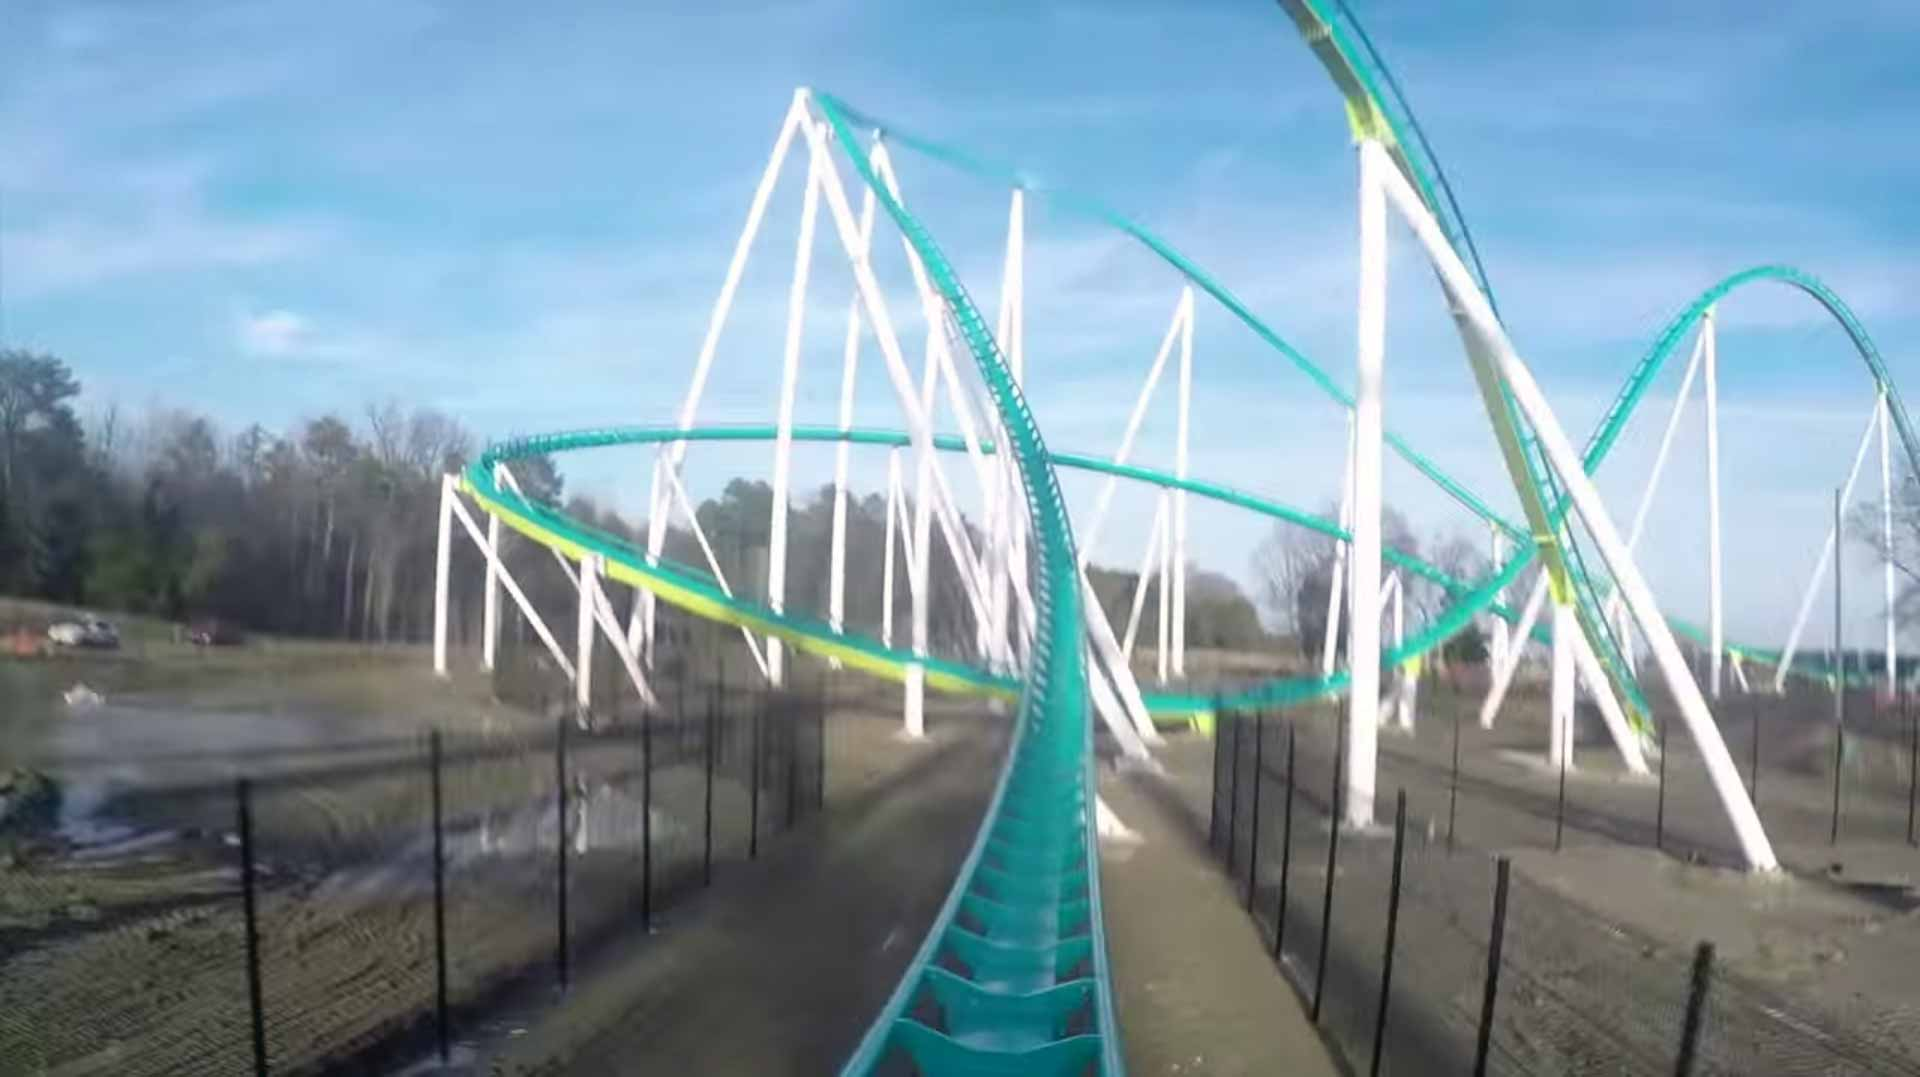 Diagramed Fury 325 Roller Coaster Related Keywords Suggestions Diagram Of Kingda Ka Worlds Highest And Fastest